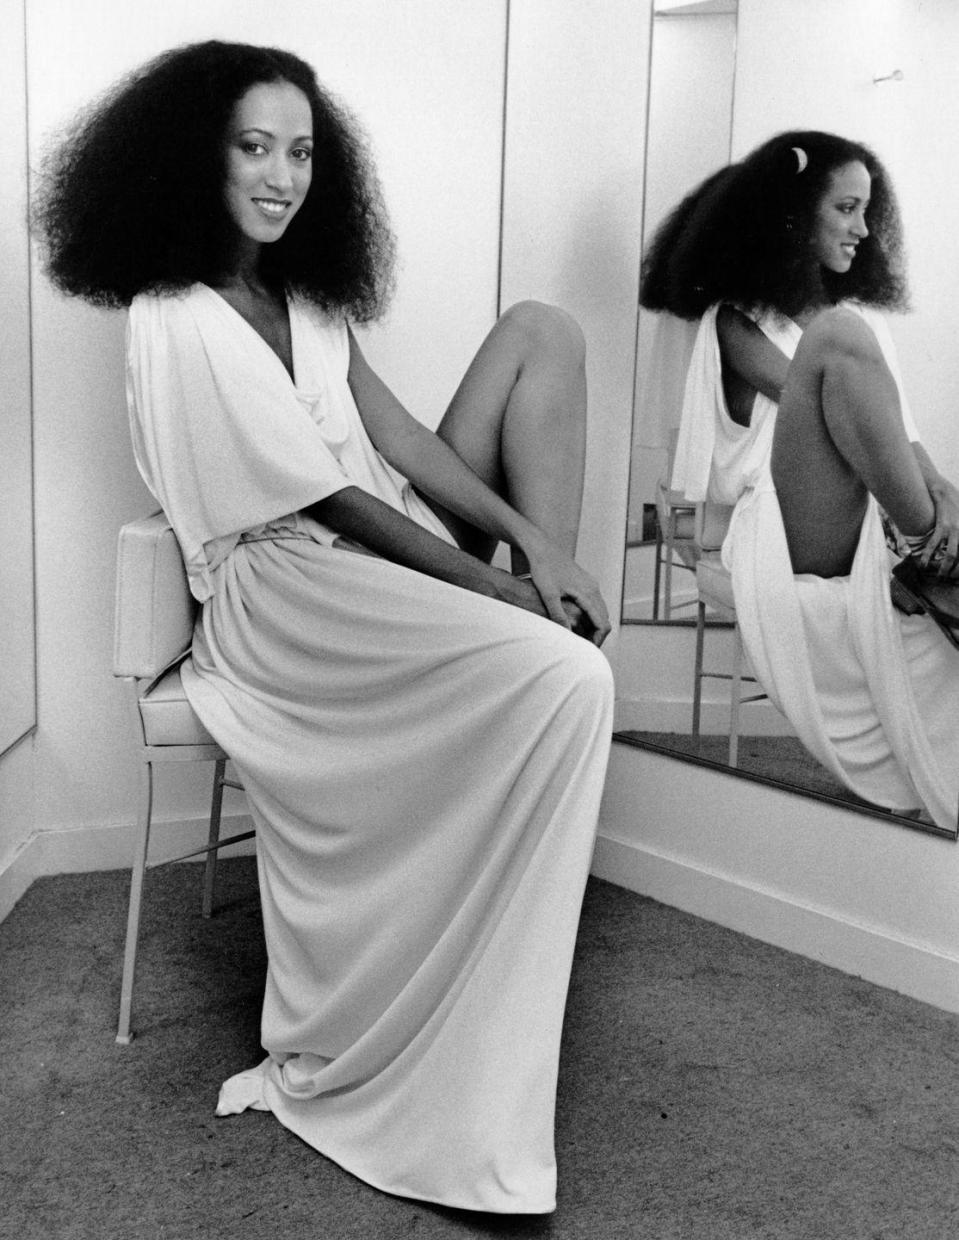 <p>Born to a Swedish saxophonist and African American artist, the captivating and ethereal Pat Cleveland was raised in Harlem and took the fashion scene by storm in the '70s. In 1973, she was one of 10 Black models chosen for the Battle of Versailles, a runway show to raise money for the the Palace of Versailles's restoration that pitted five American designers against five French haute couture designers. It was a status quo–shifting event that had never seen so many models of color on the runway at one time. </p>